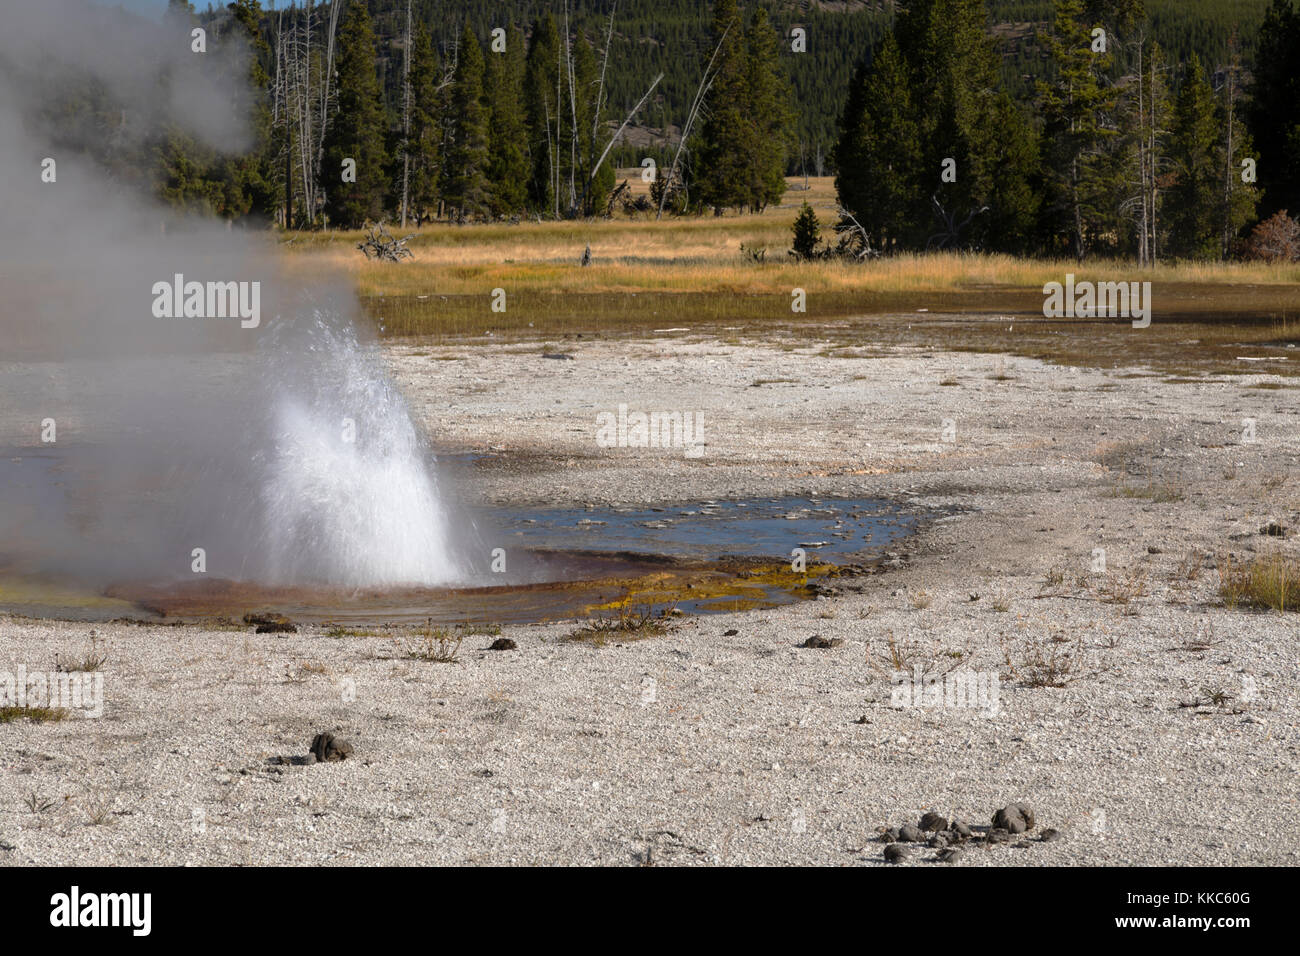 Rusty Geyser Thermal Feature in Biscuit Geyser Basin, Yellowstone National Park - Stock Image